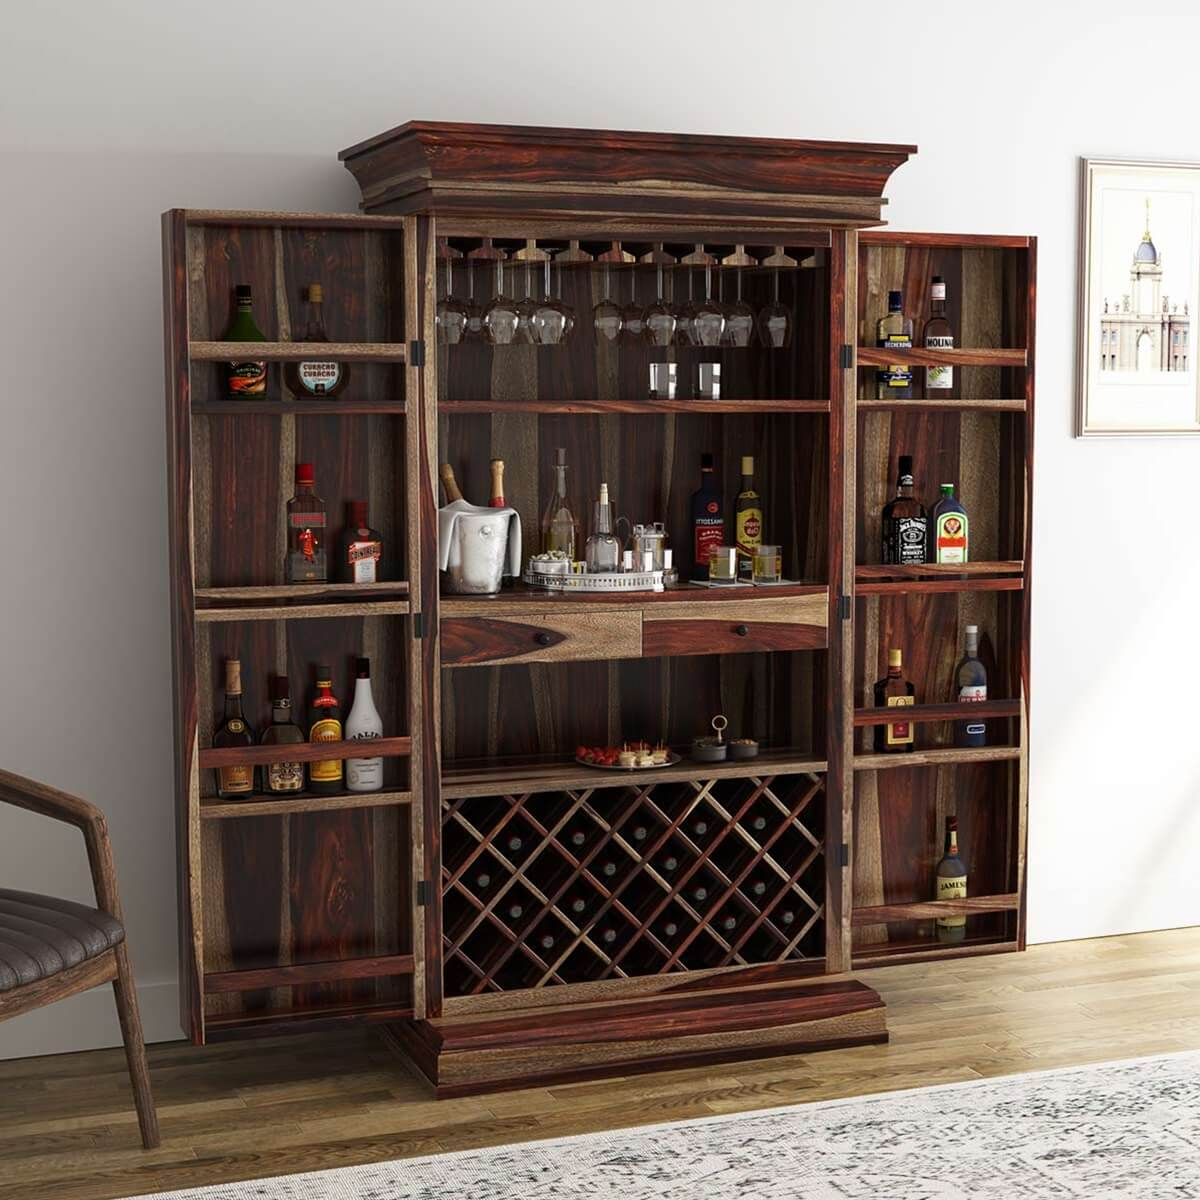 "Home Bar Furniture: Ohio Rustic Solid Wood 76"" Tall Home Wine Bar Cabinet"